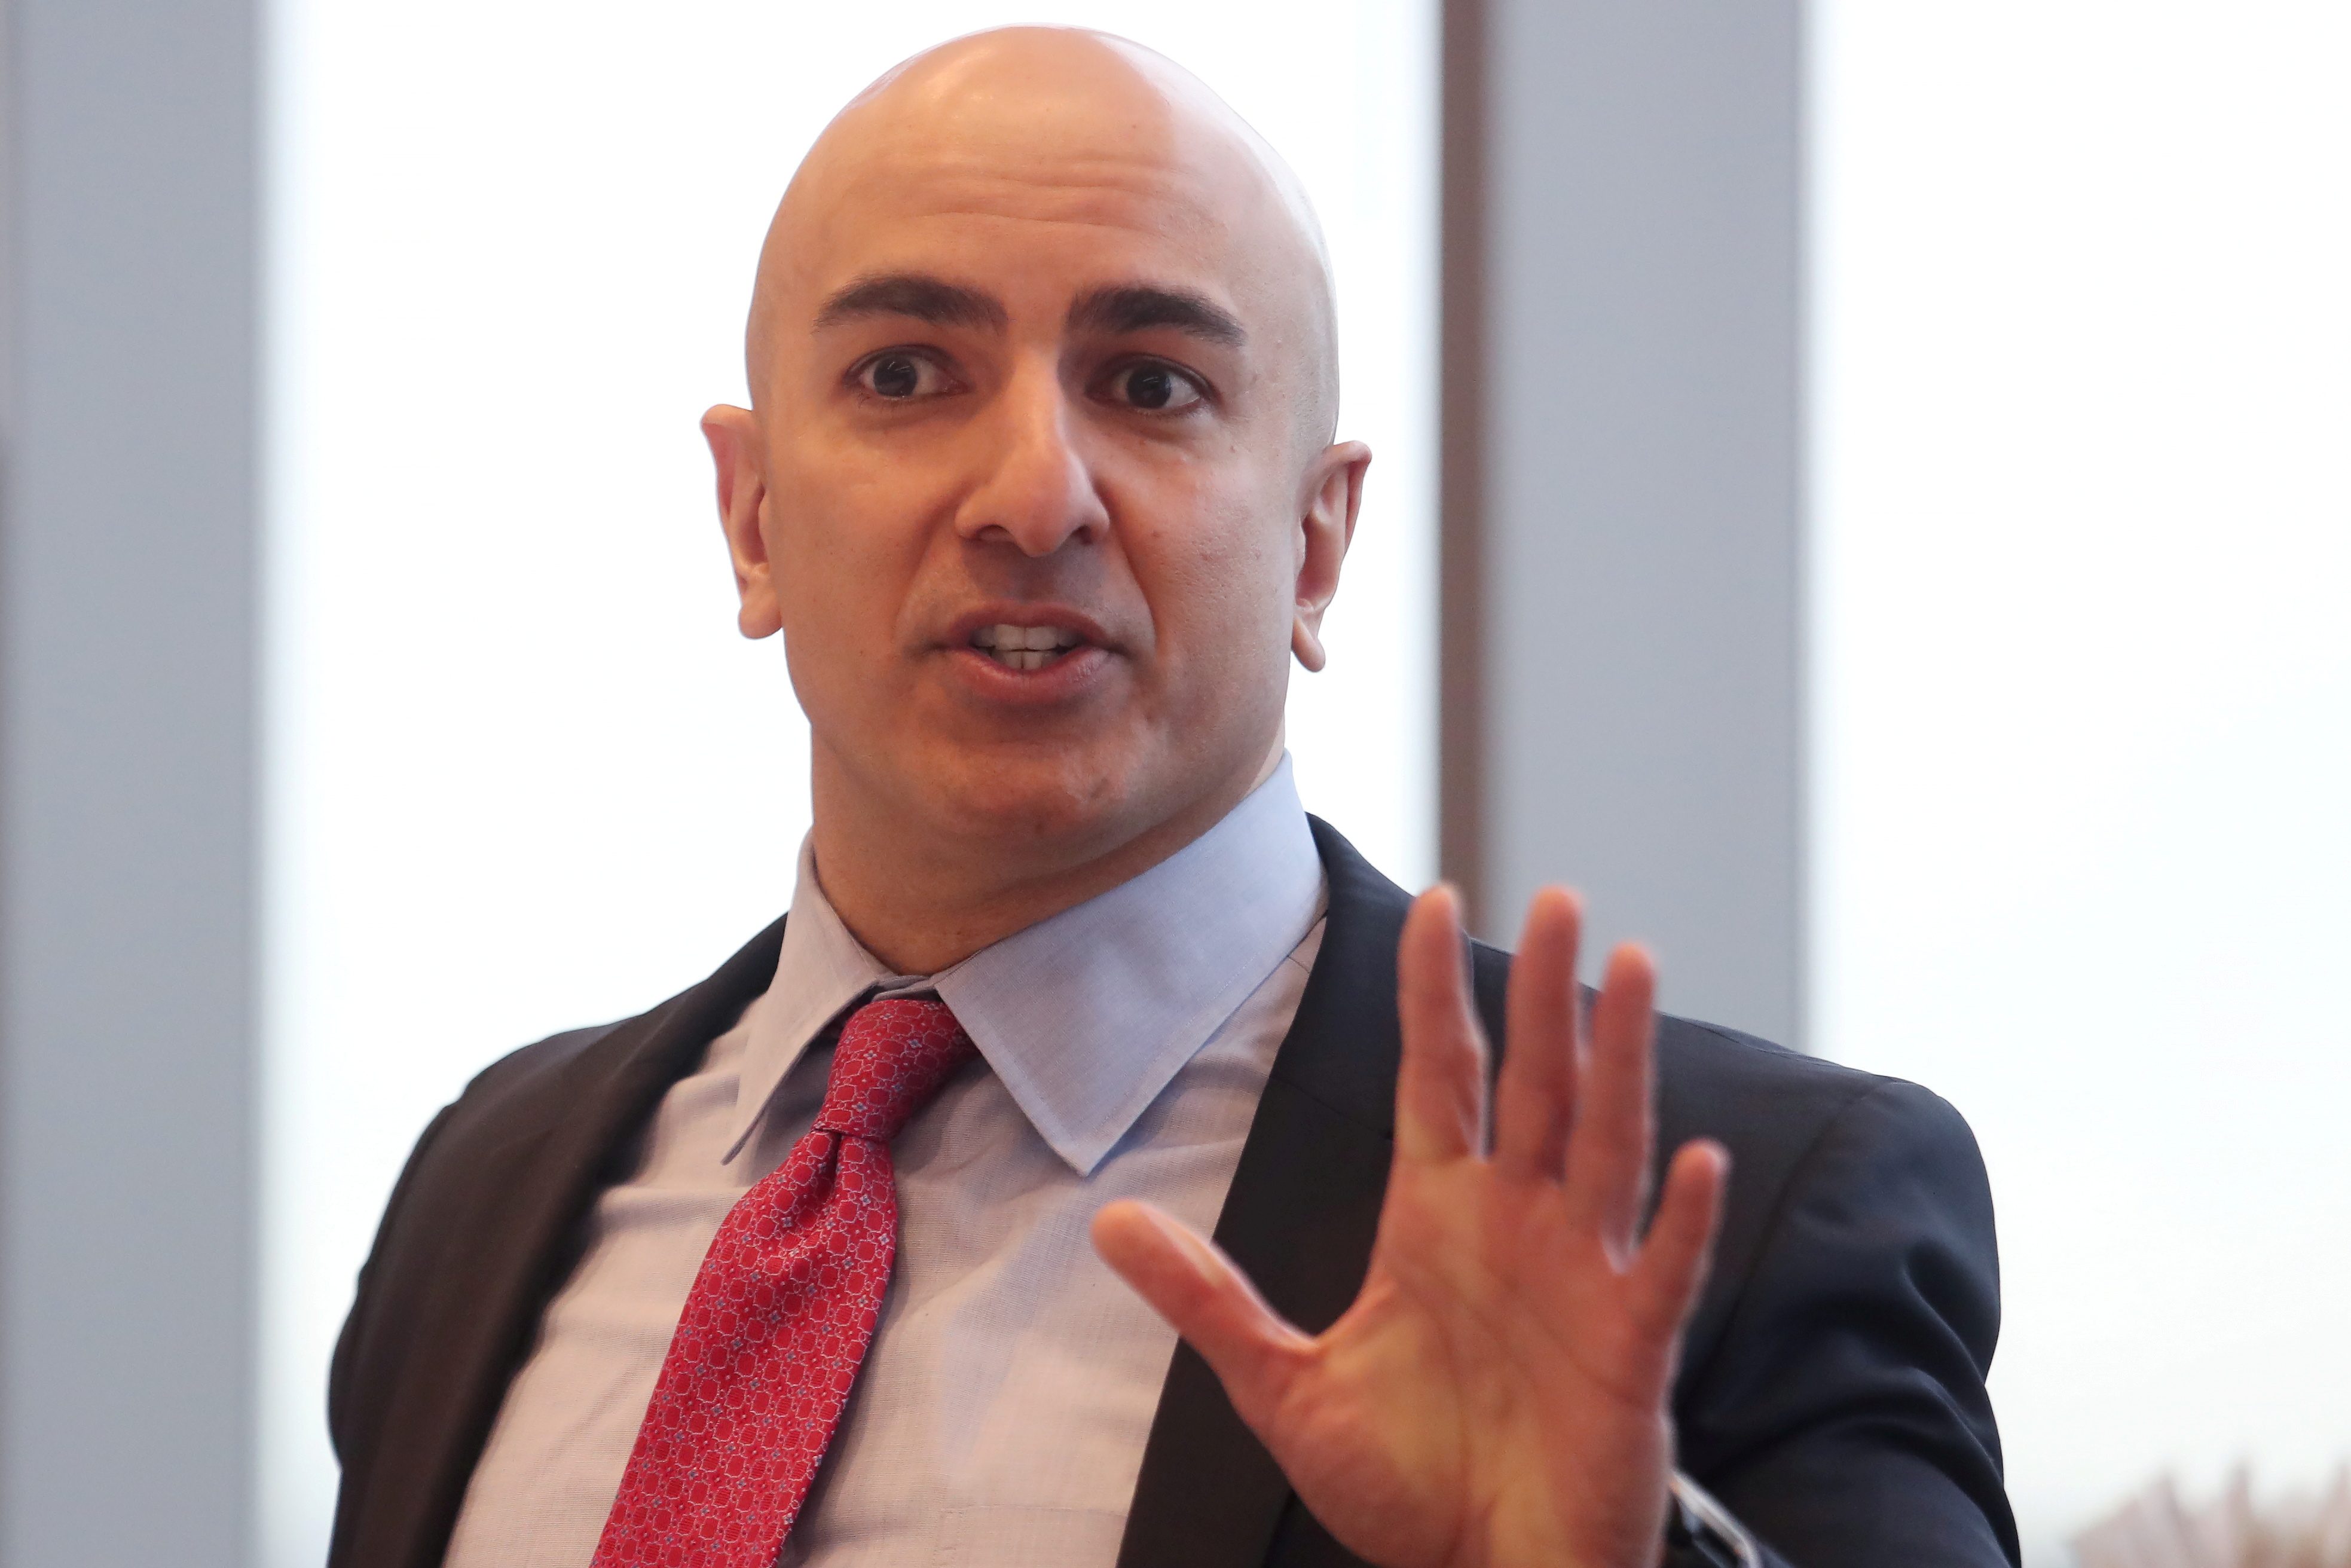 President of the Federal Reserve Bank of Minneapolis Neel Kashkari speaks during an interview in New York, U.S., March 29, 2019. REUTERS/Shannon Stapleton/File Photo